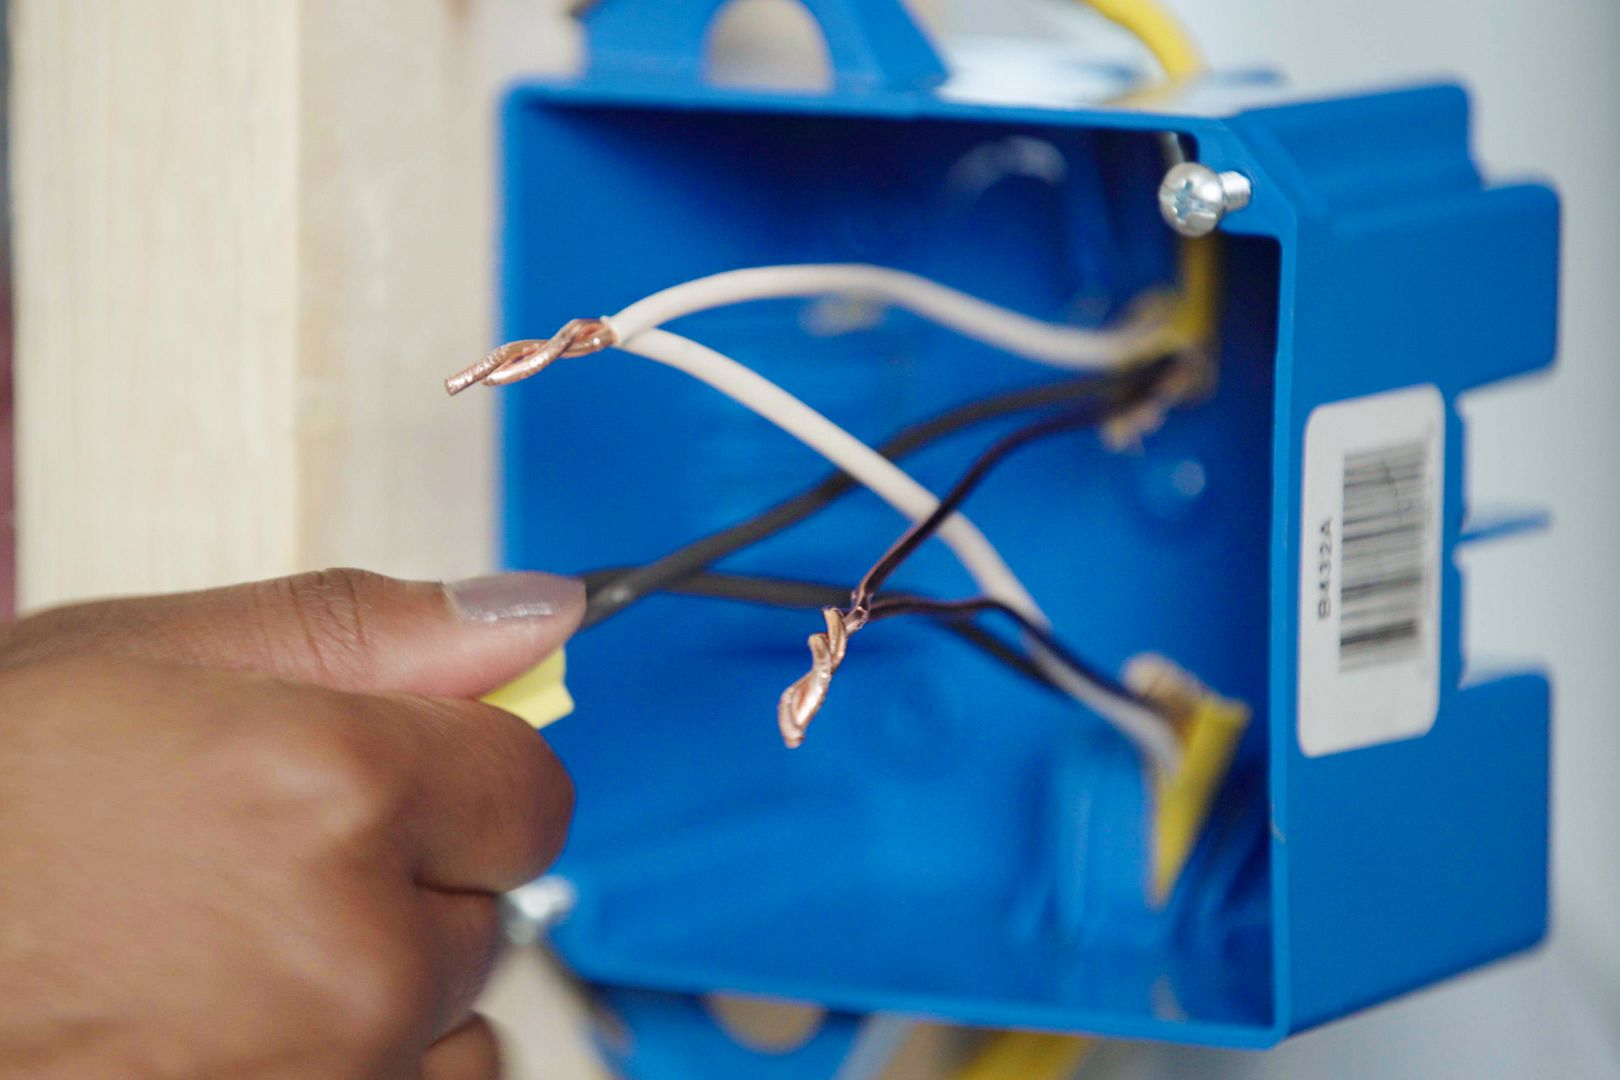 Bare copper ground wires joined together in blue electrical junction box